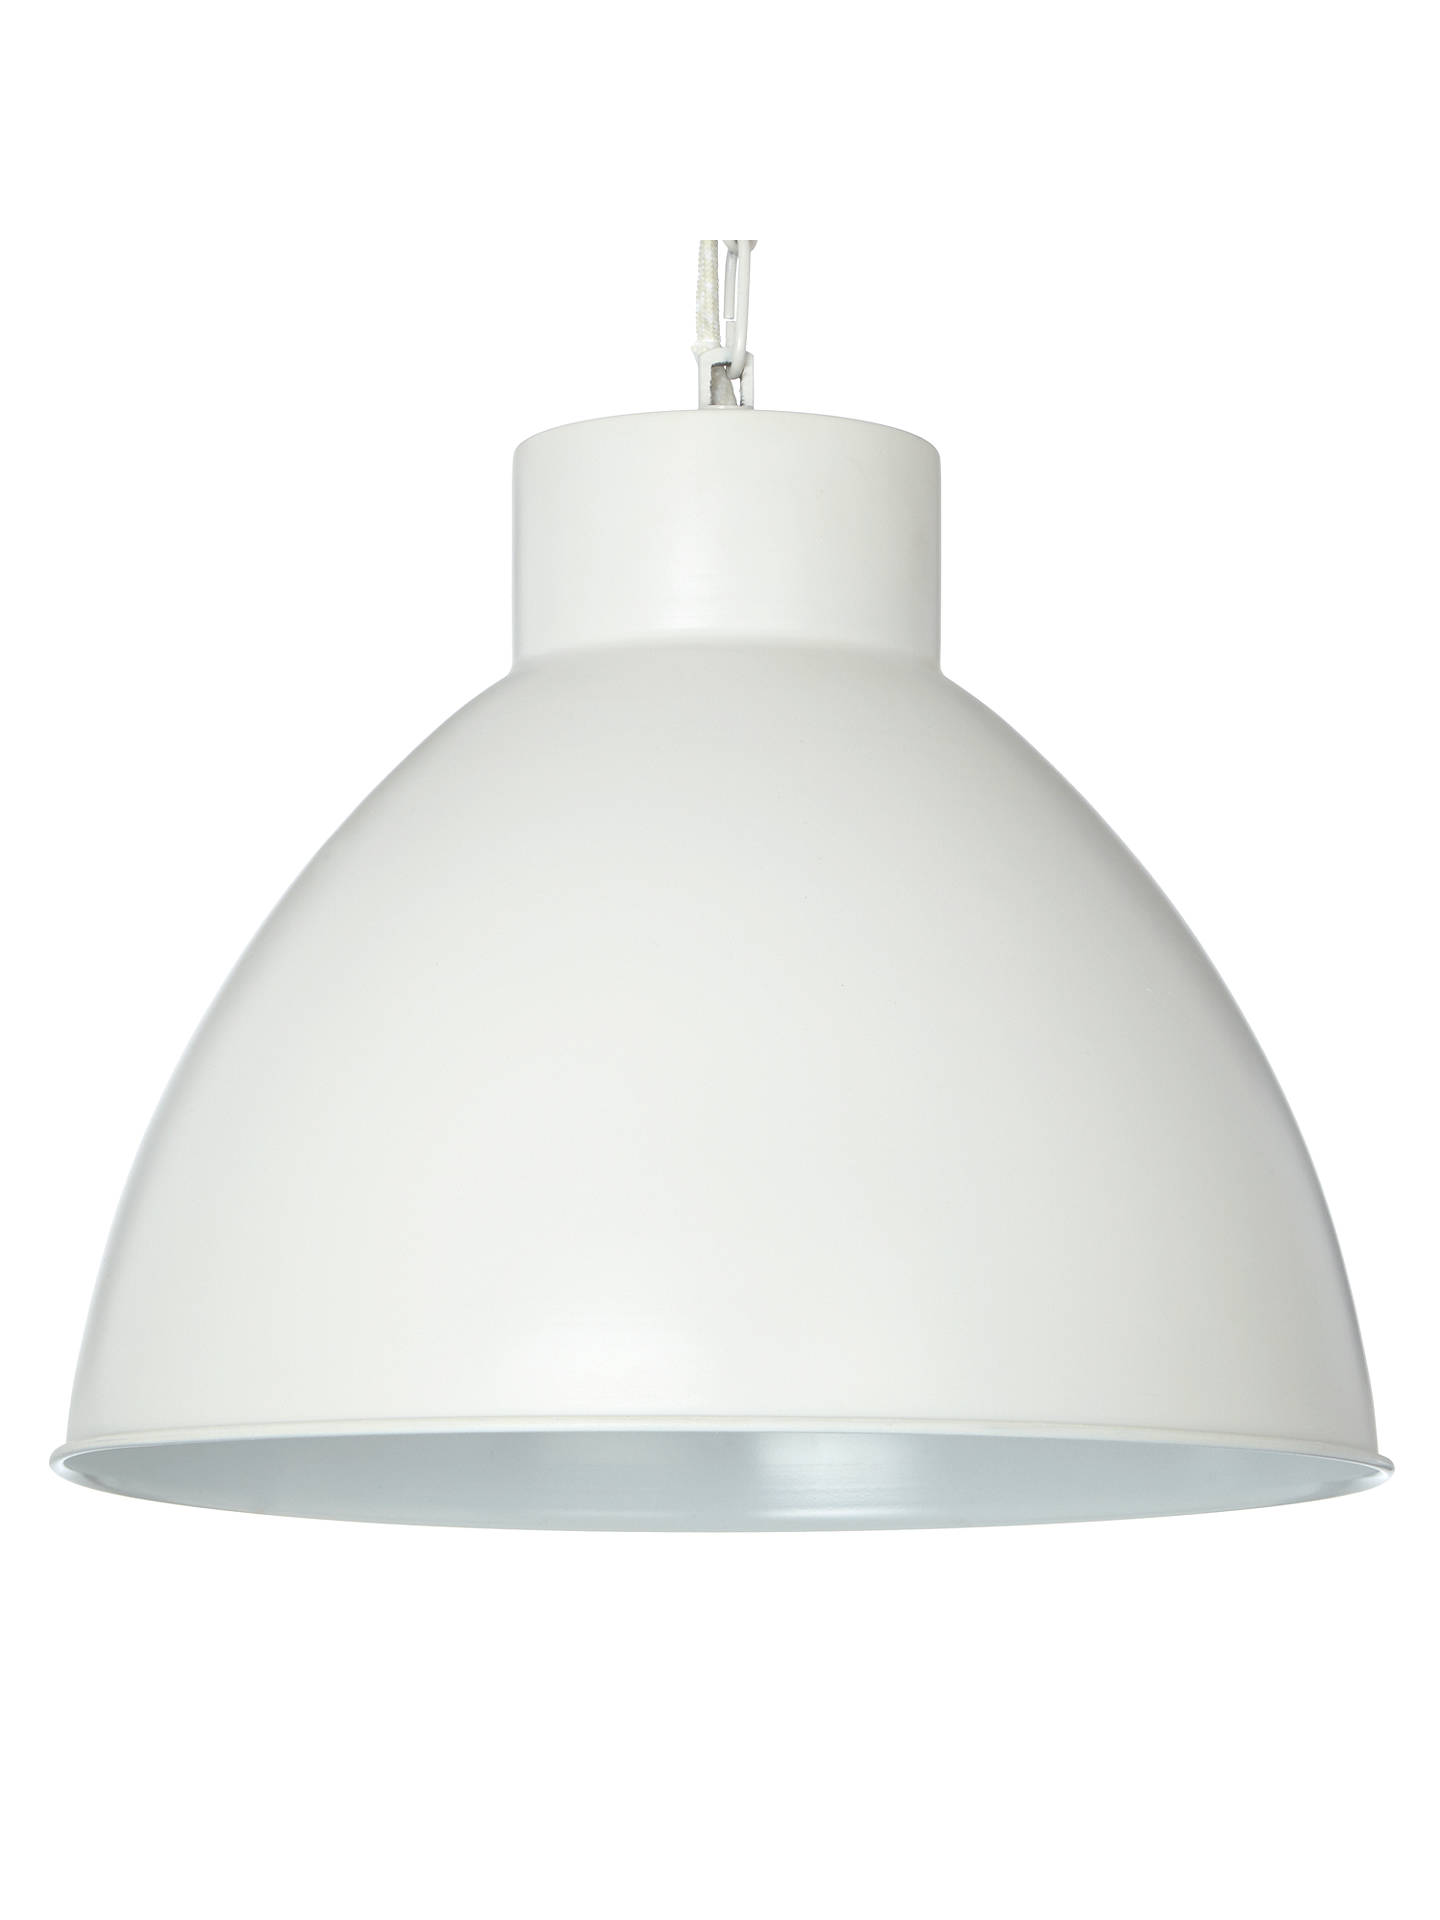 John Lewis Norton Utility Ceiling Light